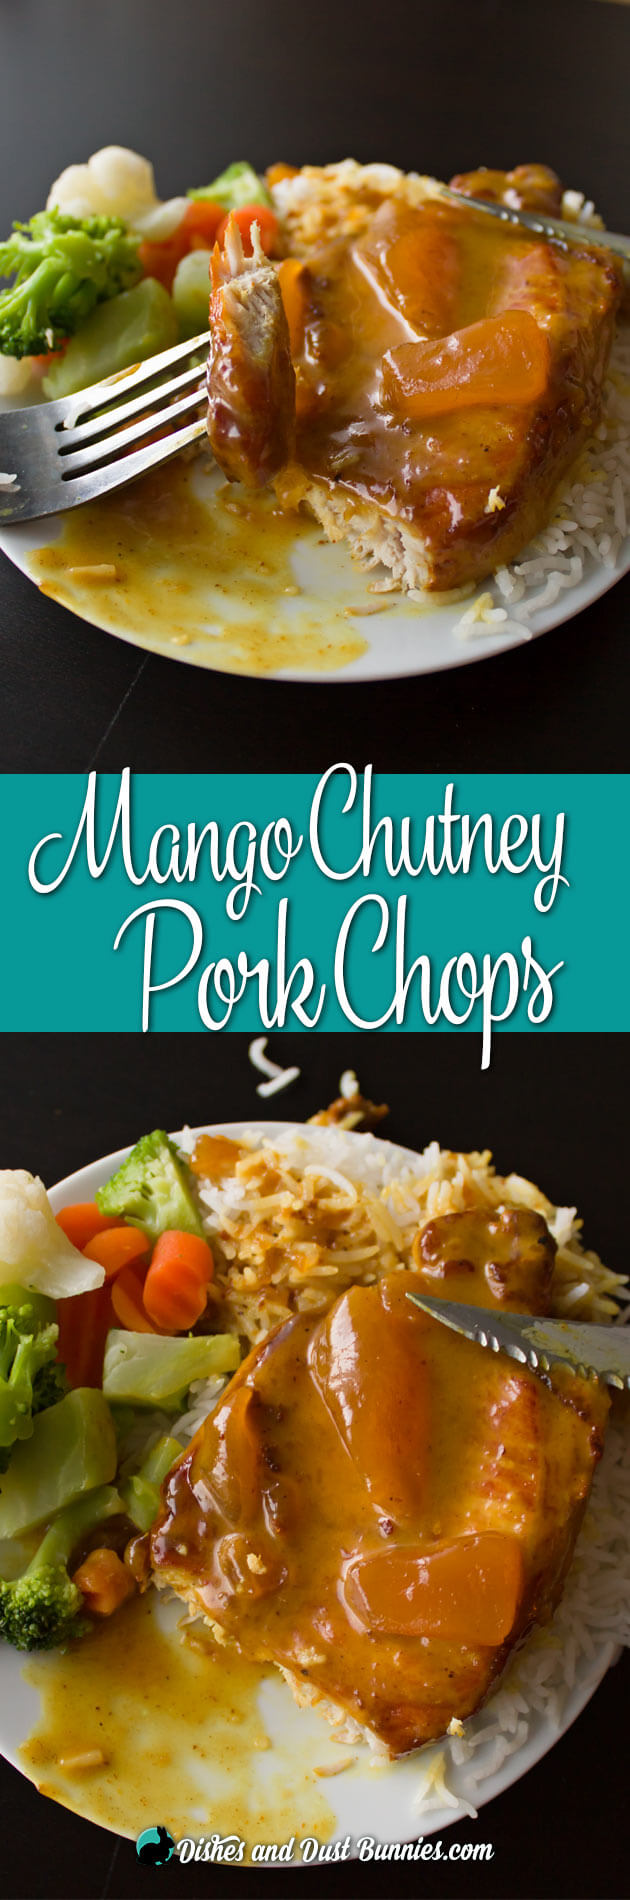 Mango Chutney Pork Chops from dishesanddustbunnies.com